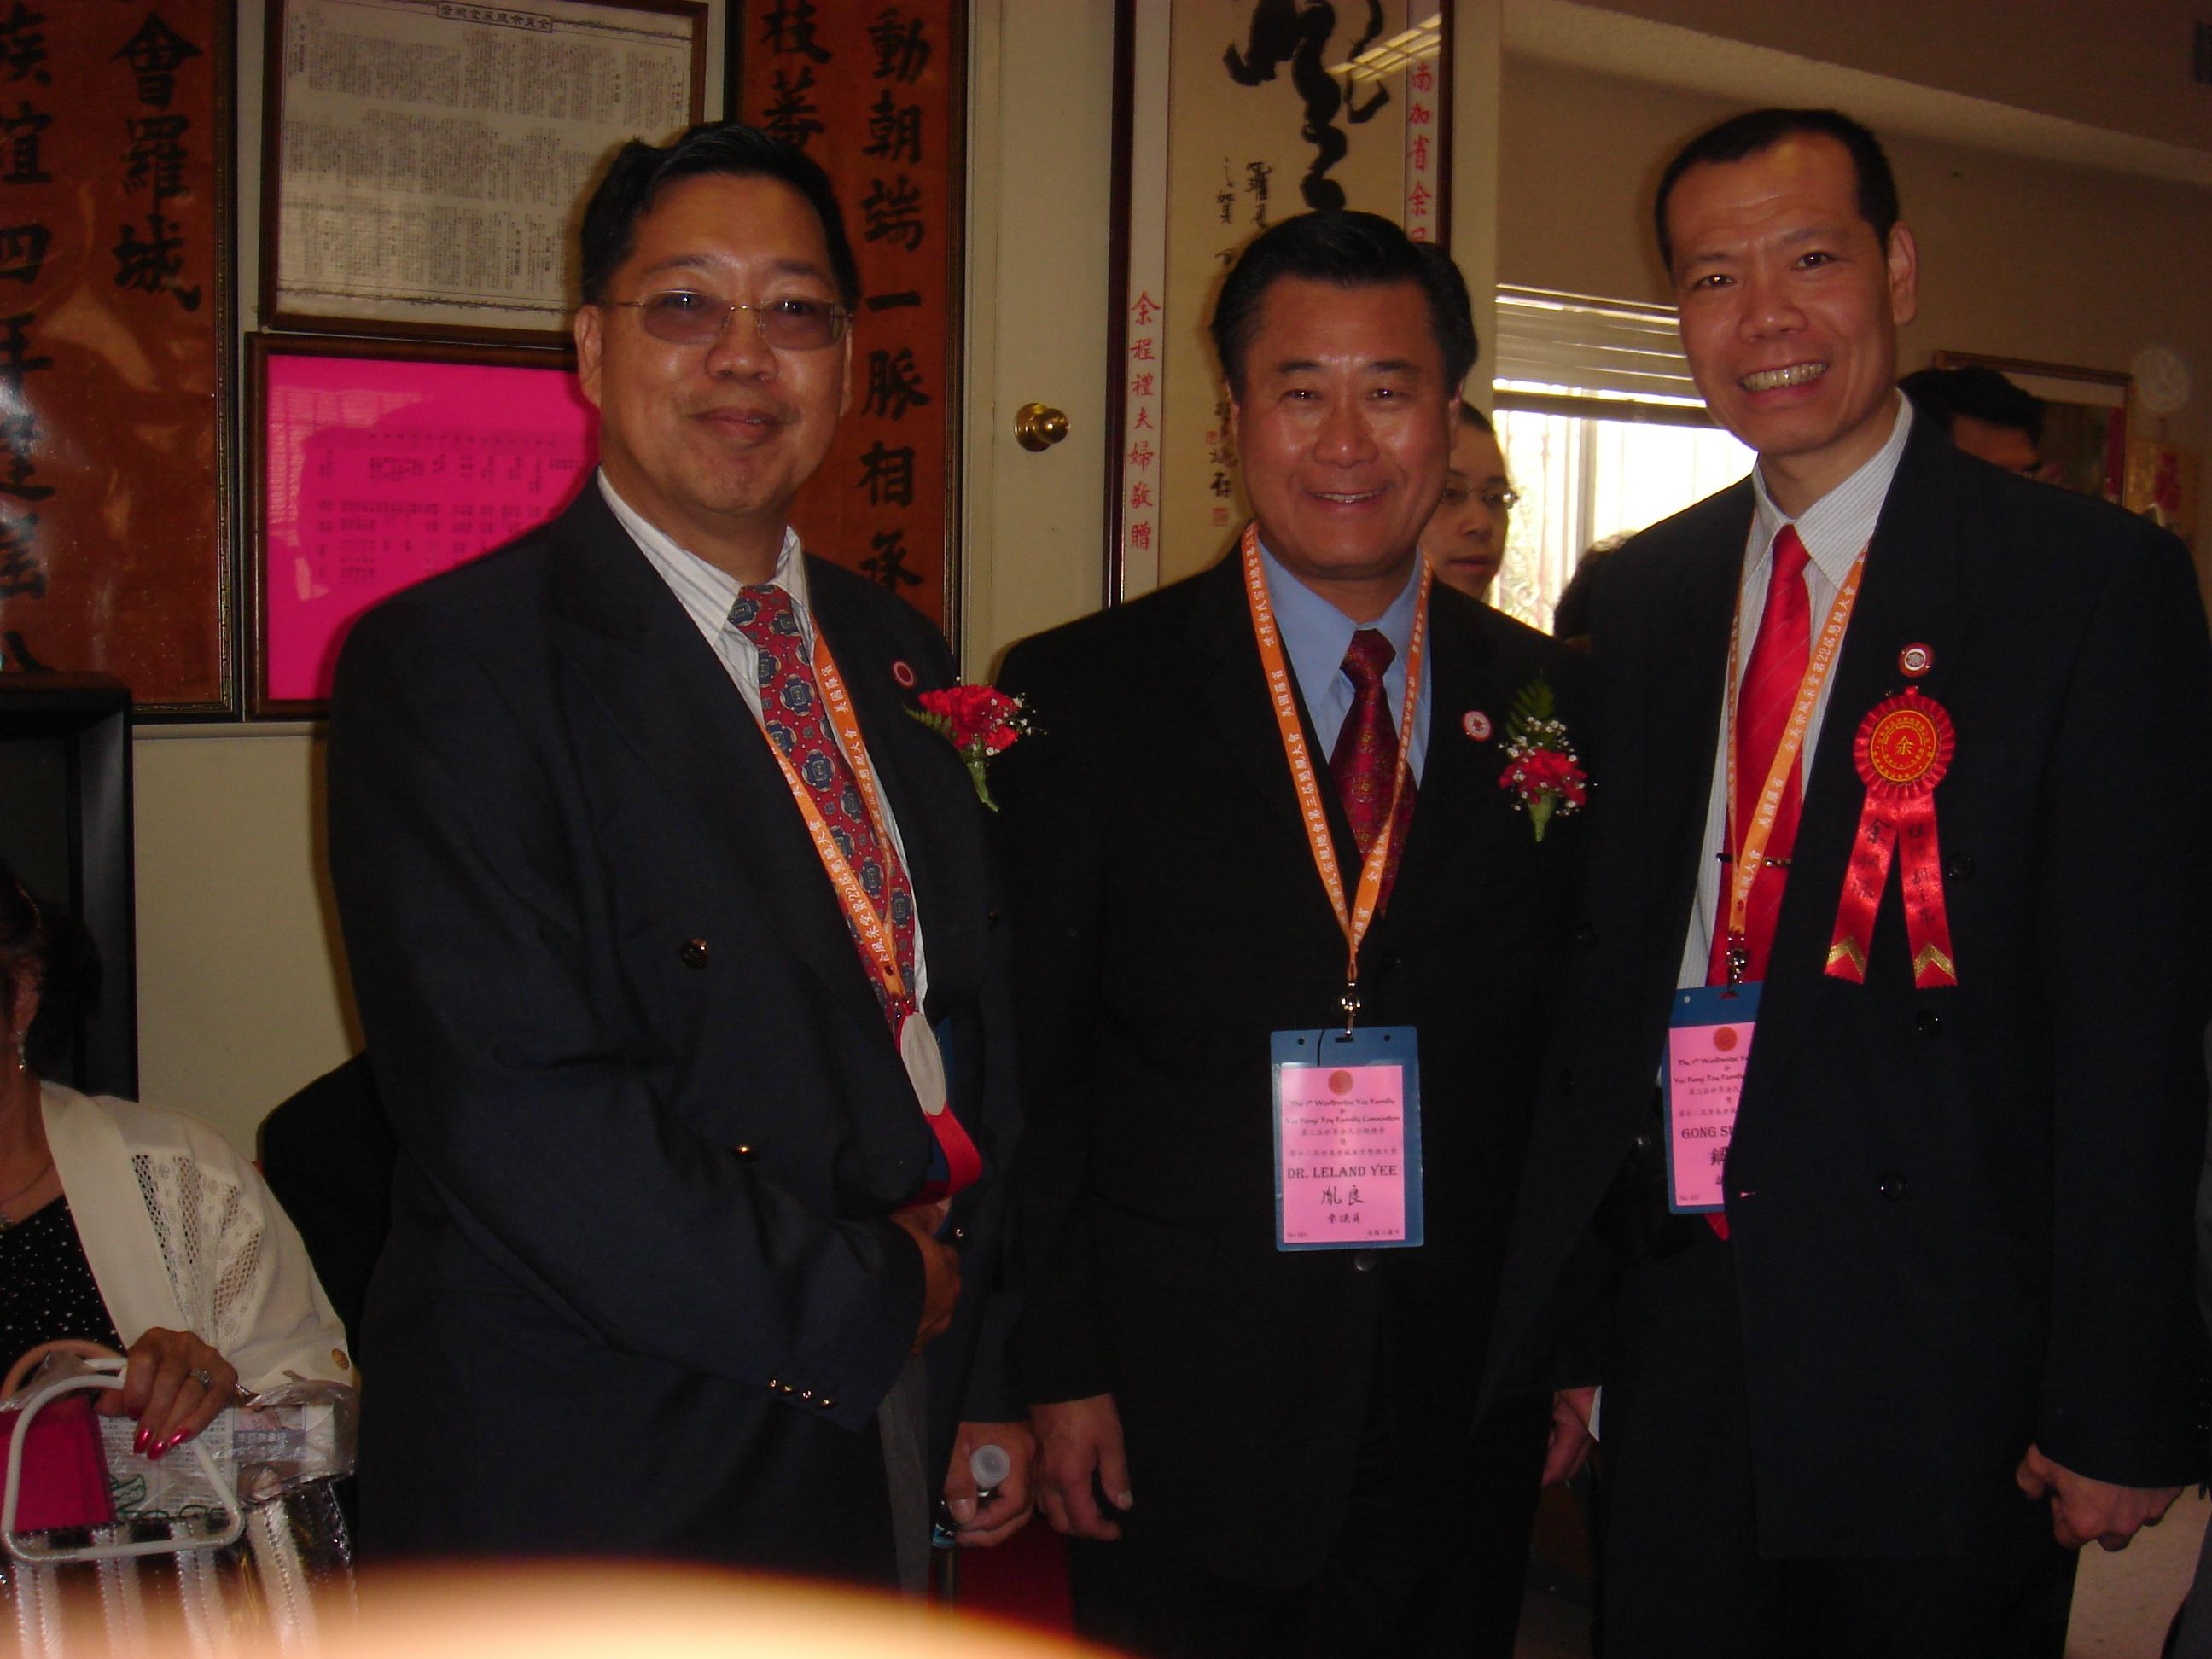 With Leland